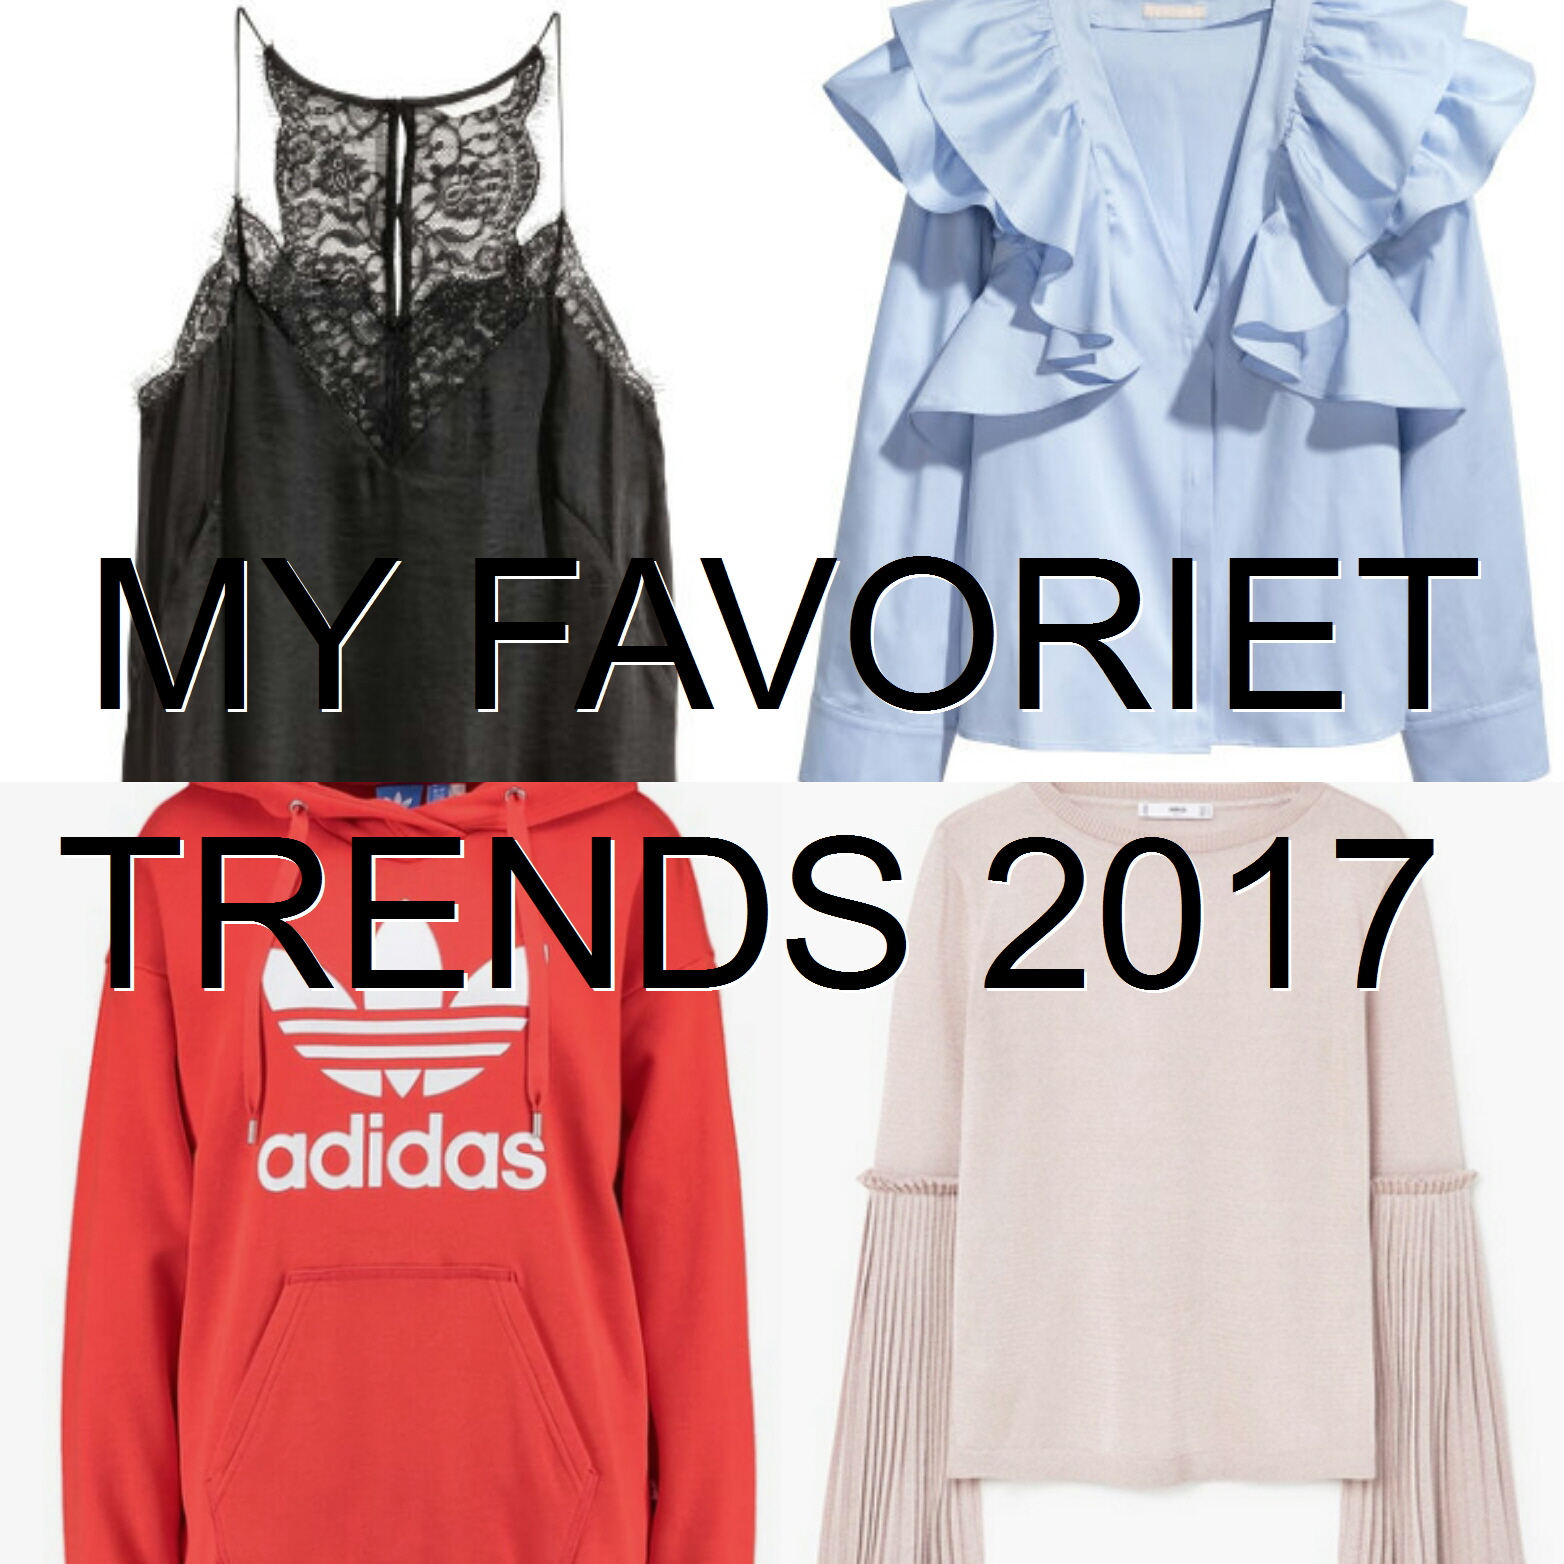 Chrissella: MY FAVORITE TRENDS 2017